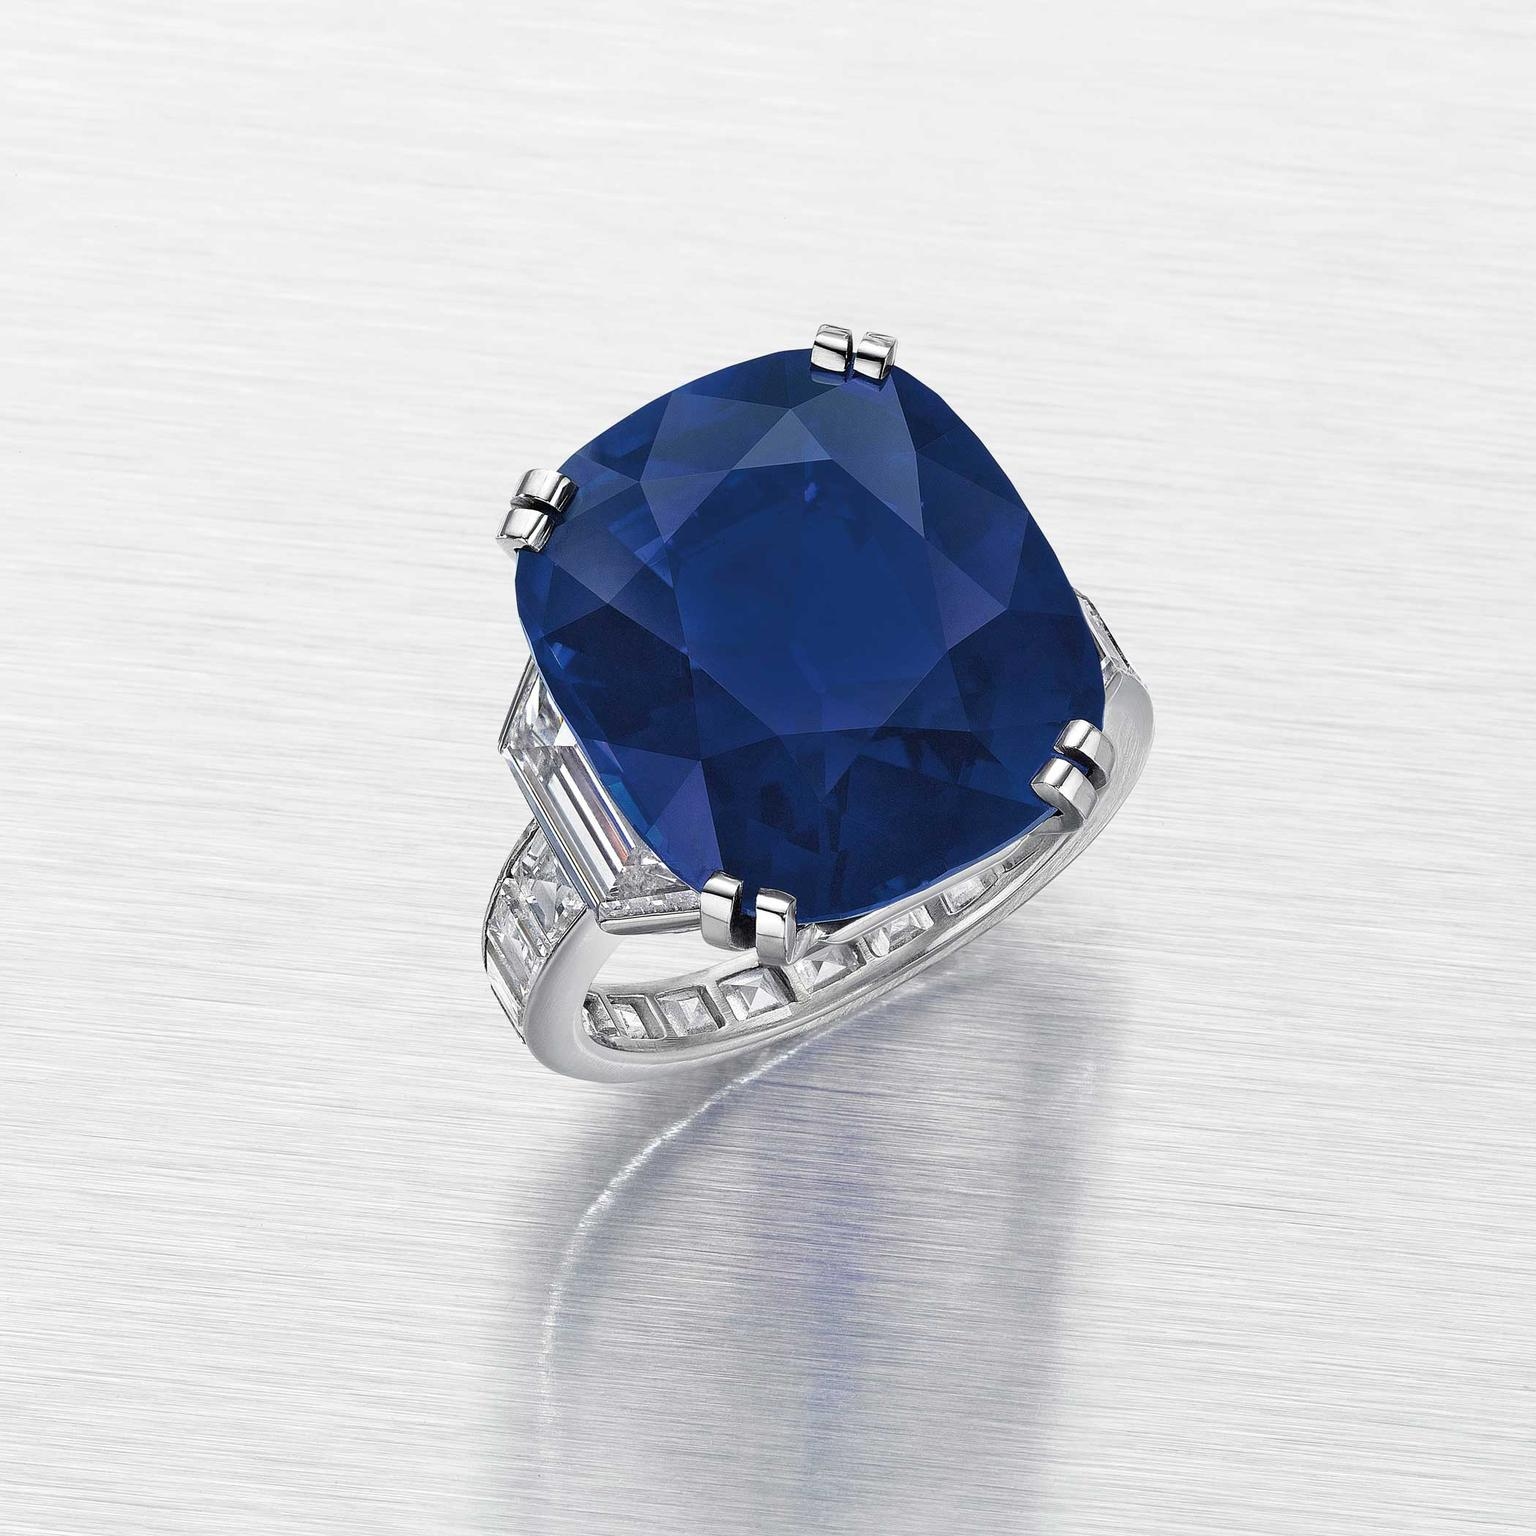 Christies NY The Kelly Sapphire by Cartier